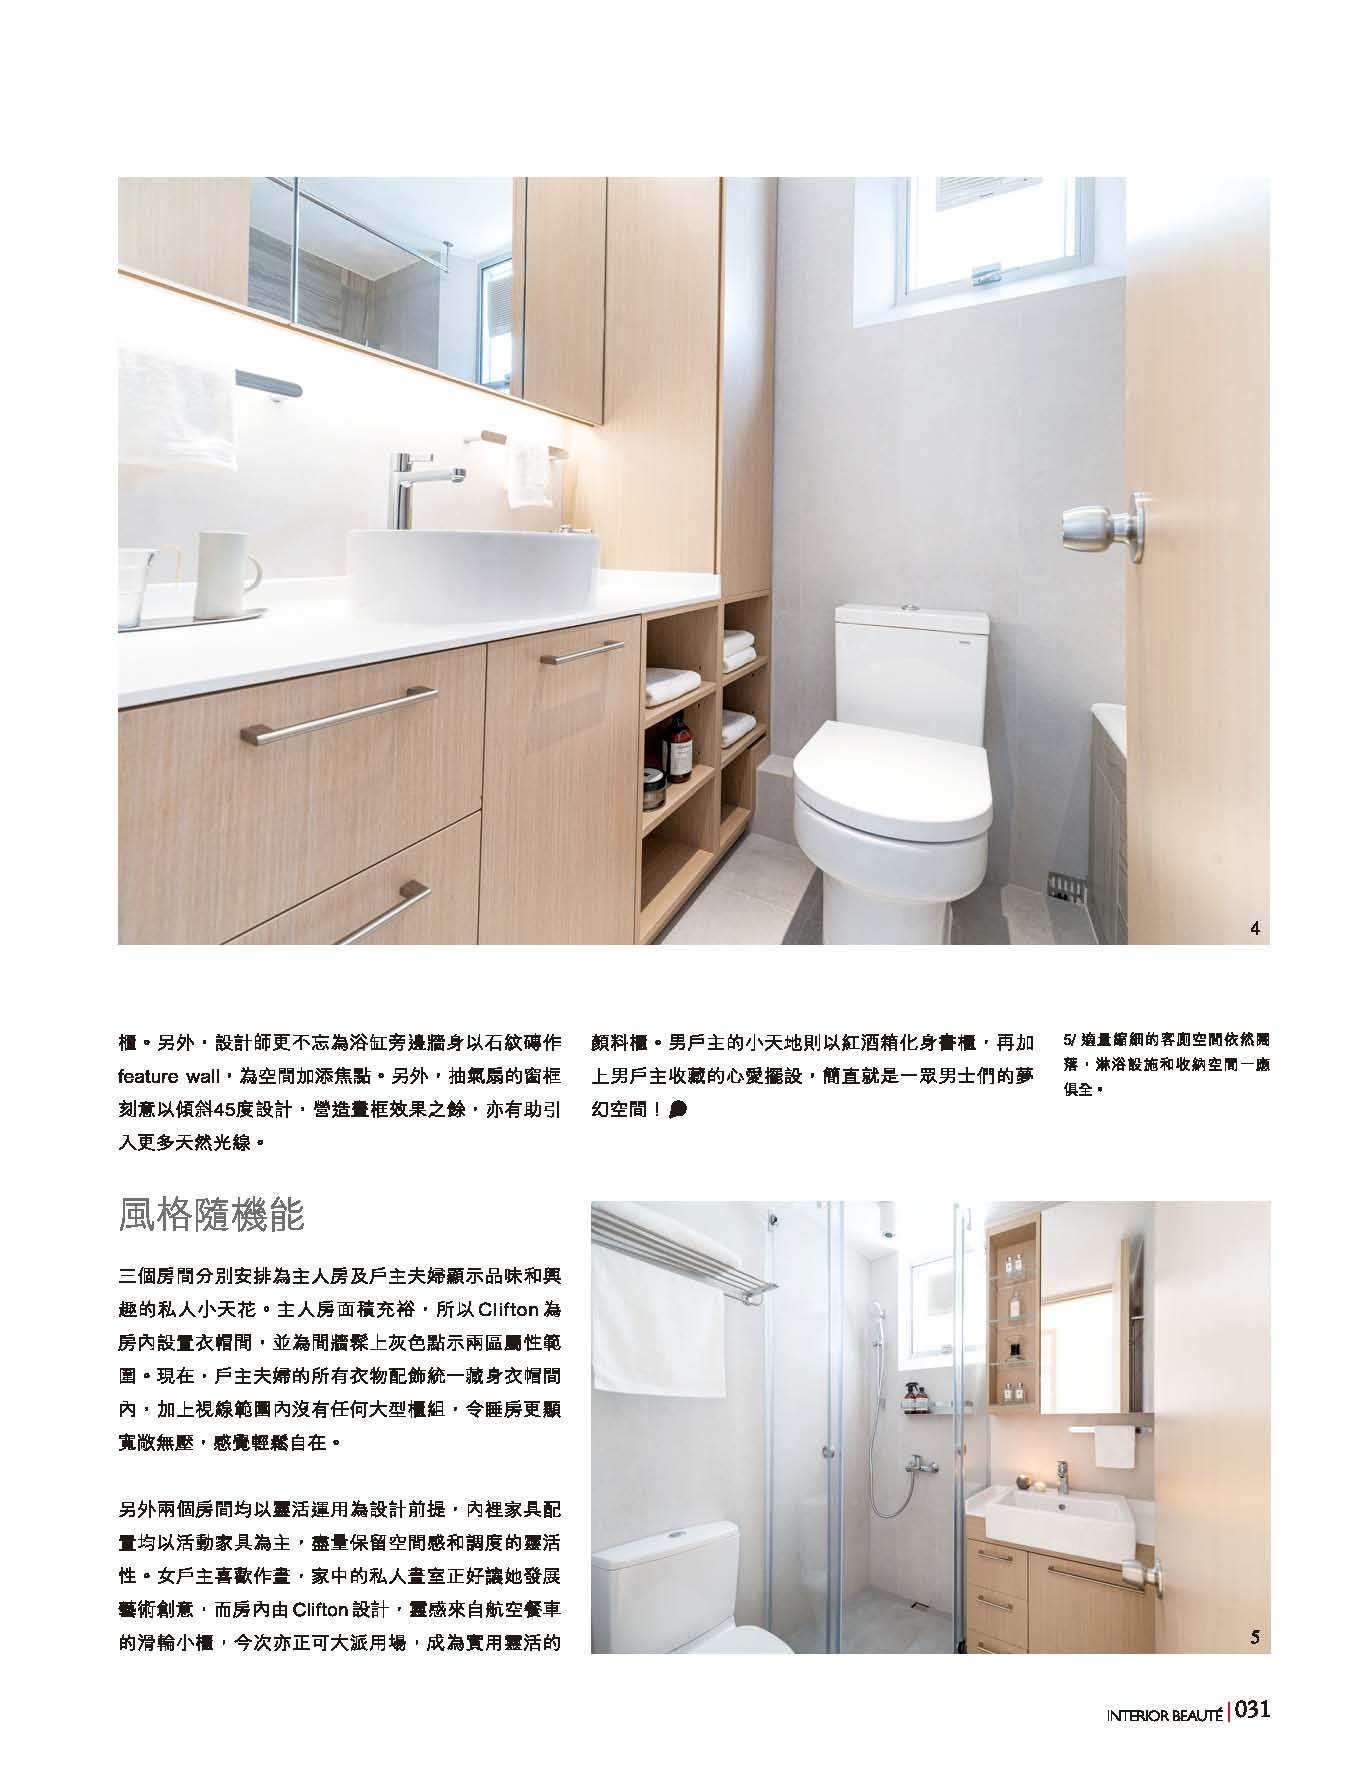 Interior Beaute TKS 04 April 2020 Issue Page 9